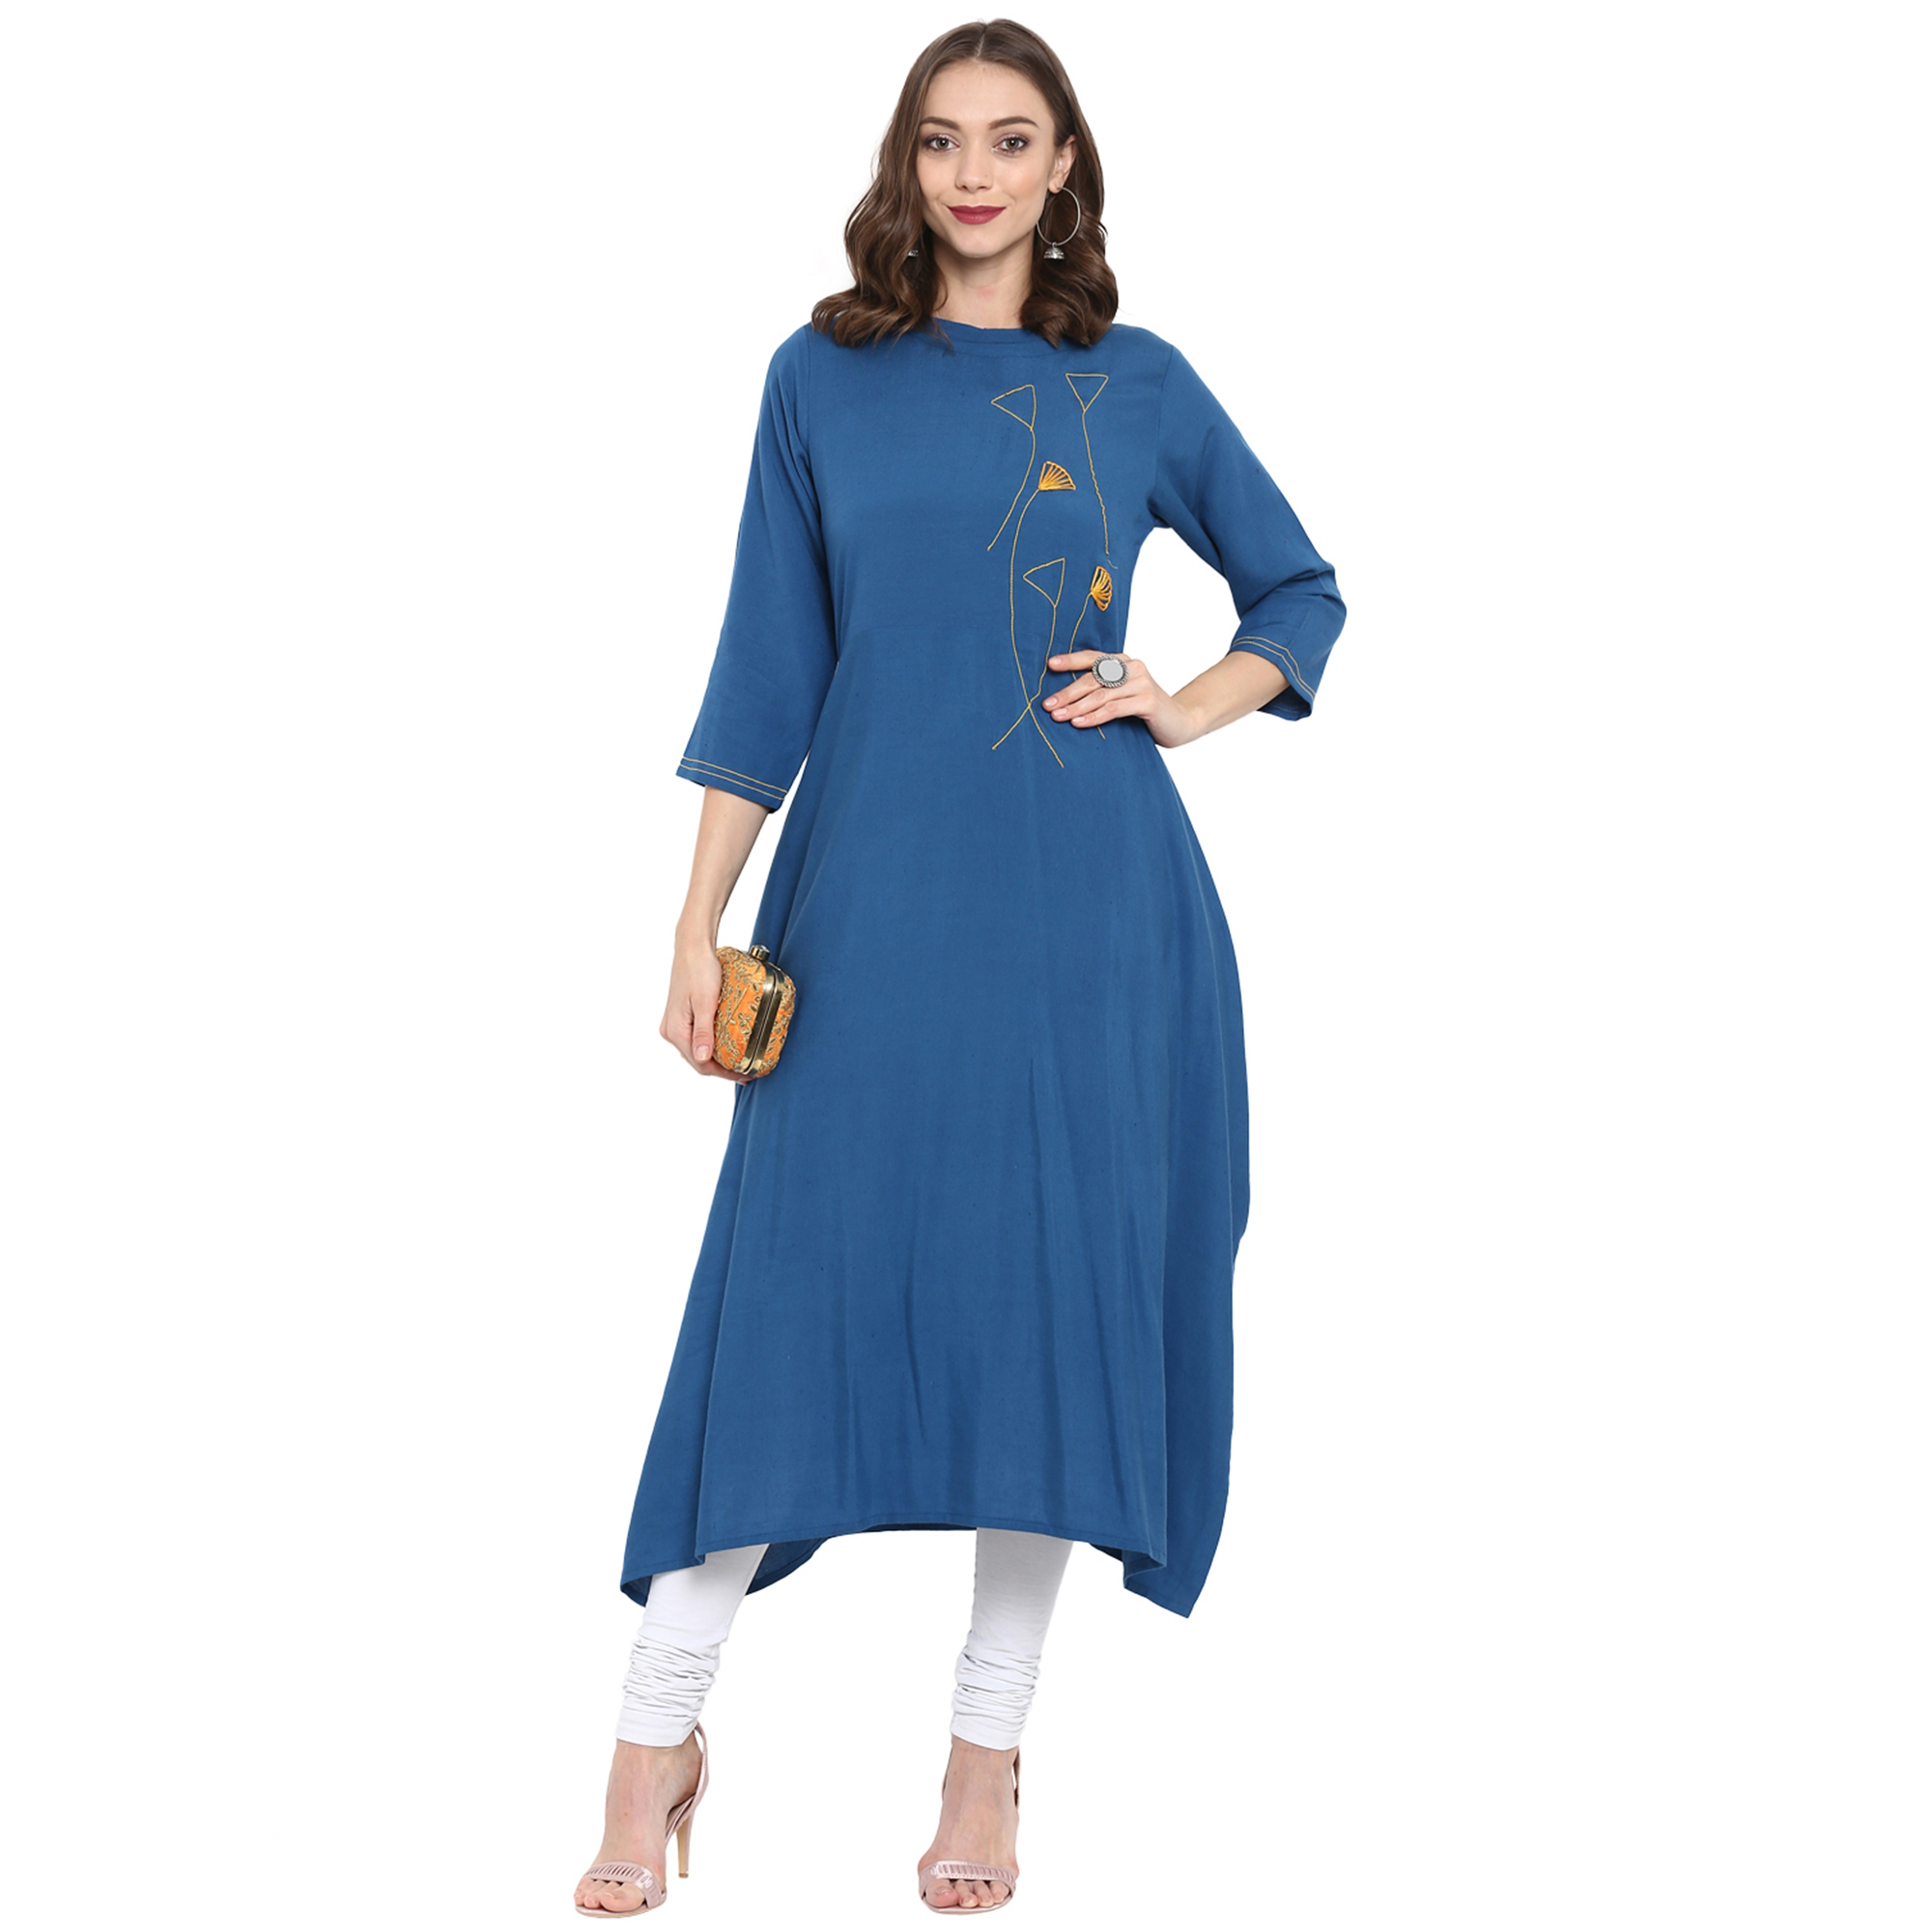 Entrancing Blue Colored Casual Wear Long Cotton linen Kurti